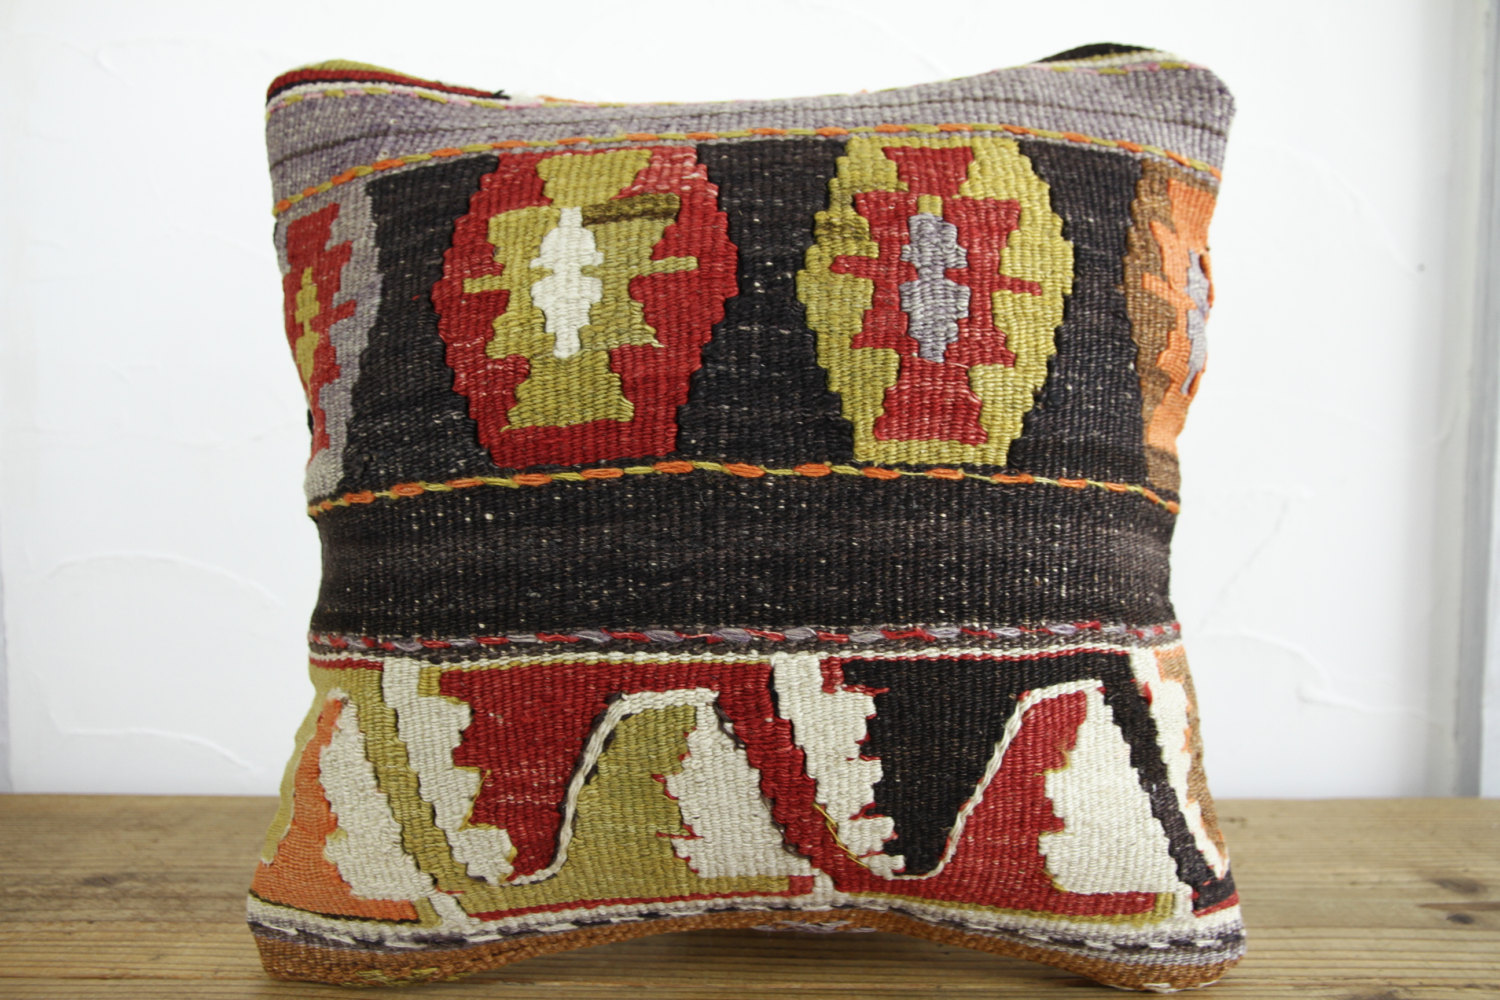 Kilim Pillows |16x16 | Decorative Pillows | 165 | Accent Pillows, Kilim cushion